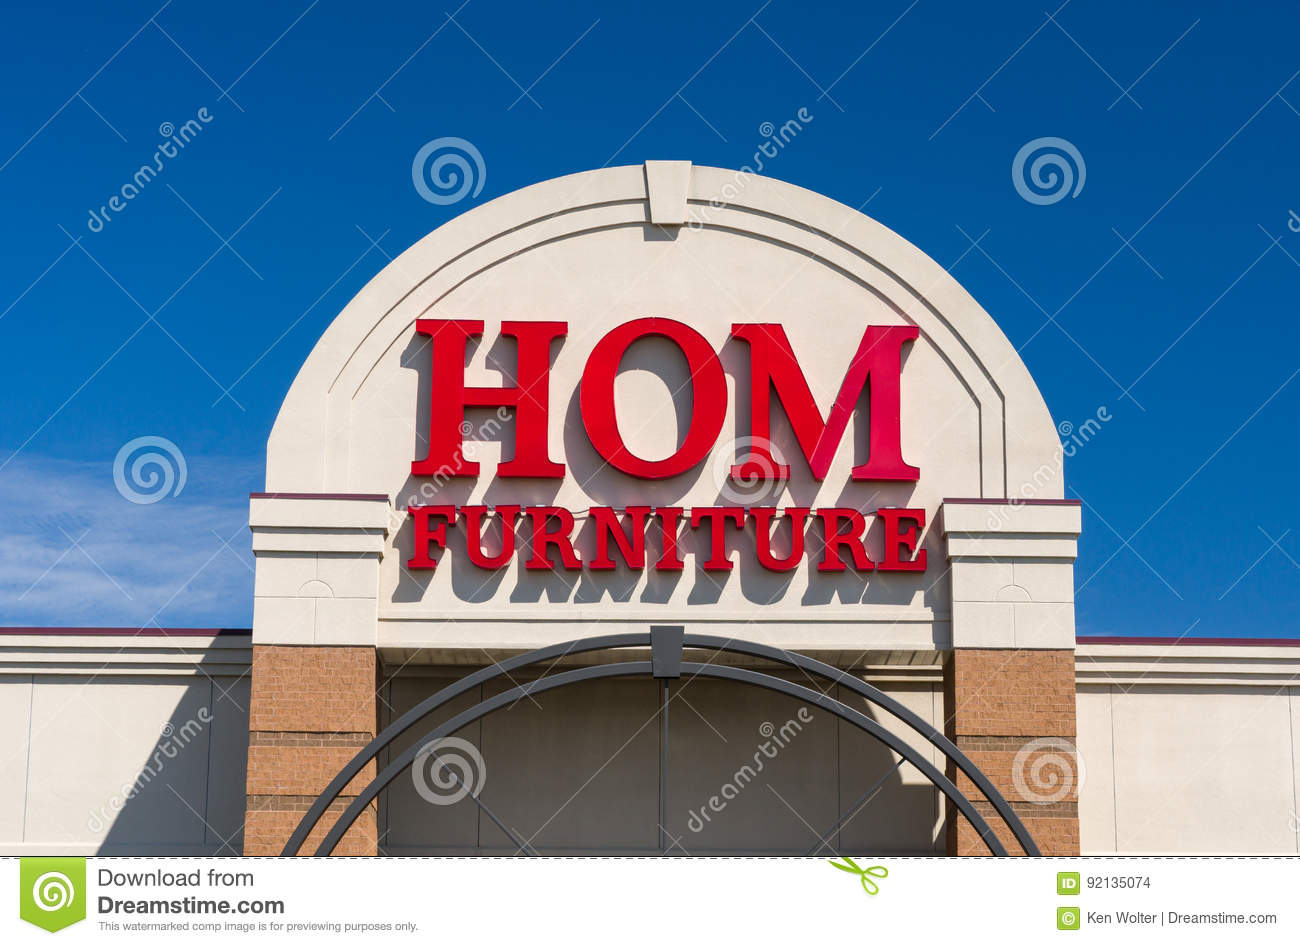 Hom Furniture Exterior And Logo Editorial Stock Image. Hom Furniture Exterior And Logo Editorial Stock Image   Image